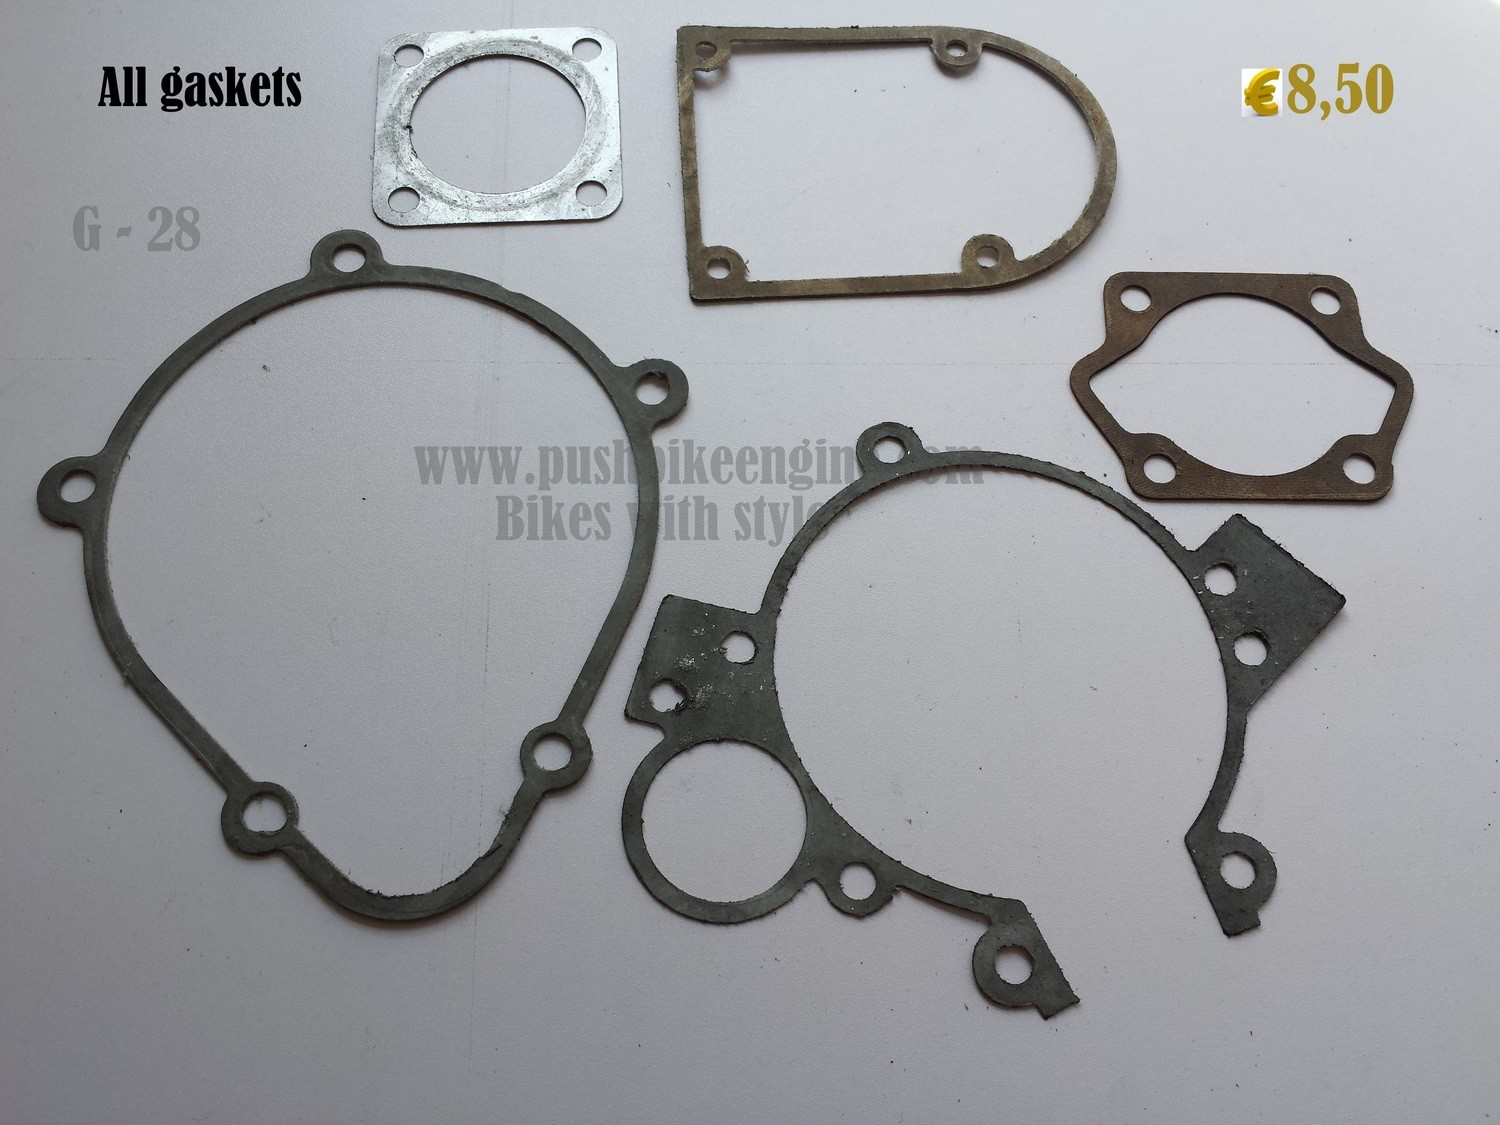 Push Bike gaskets all set